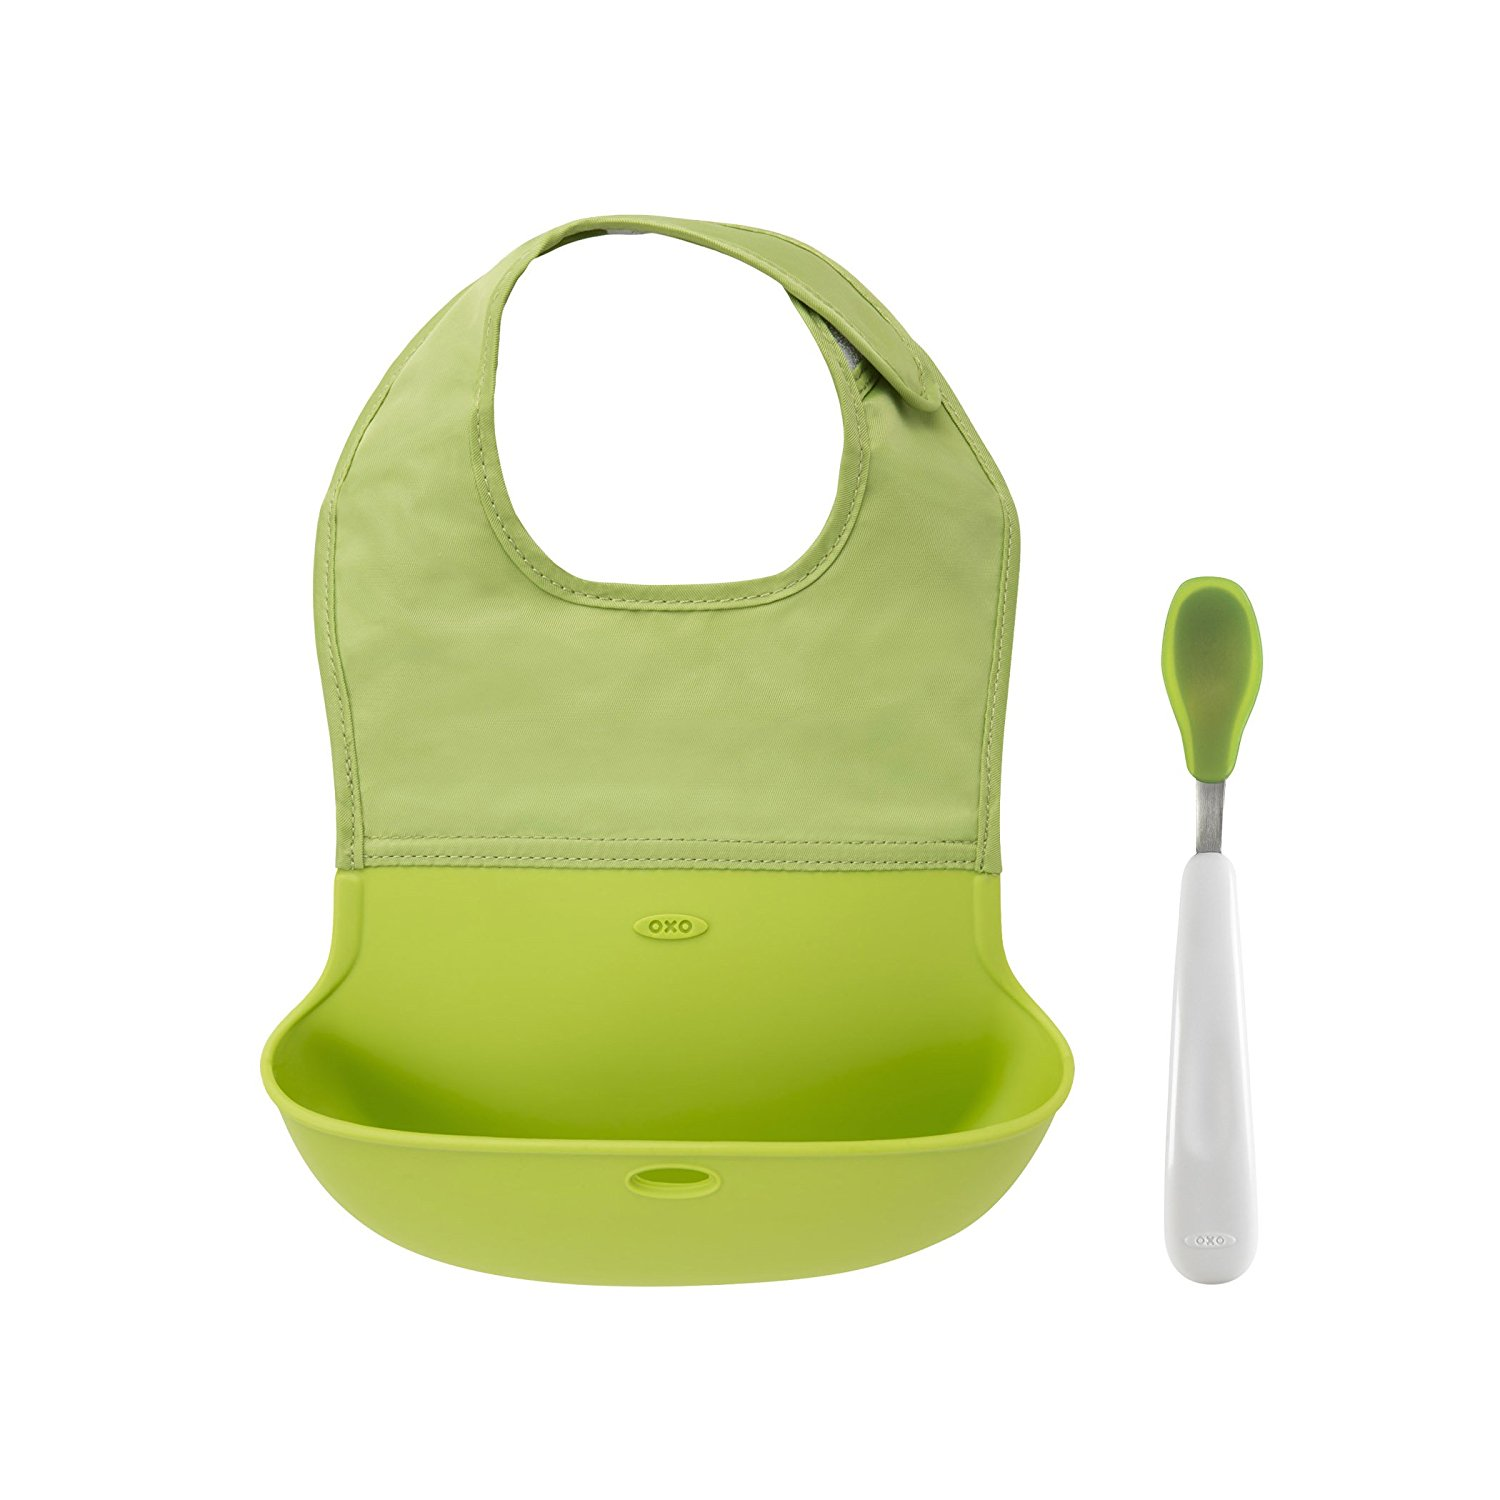 OXO Tot On-the-Go Bib and Spoon Set Green by OXO International, Ltd.